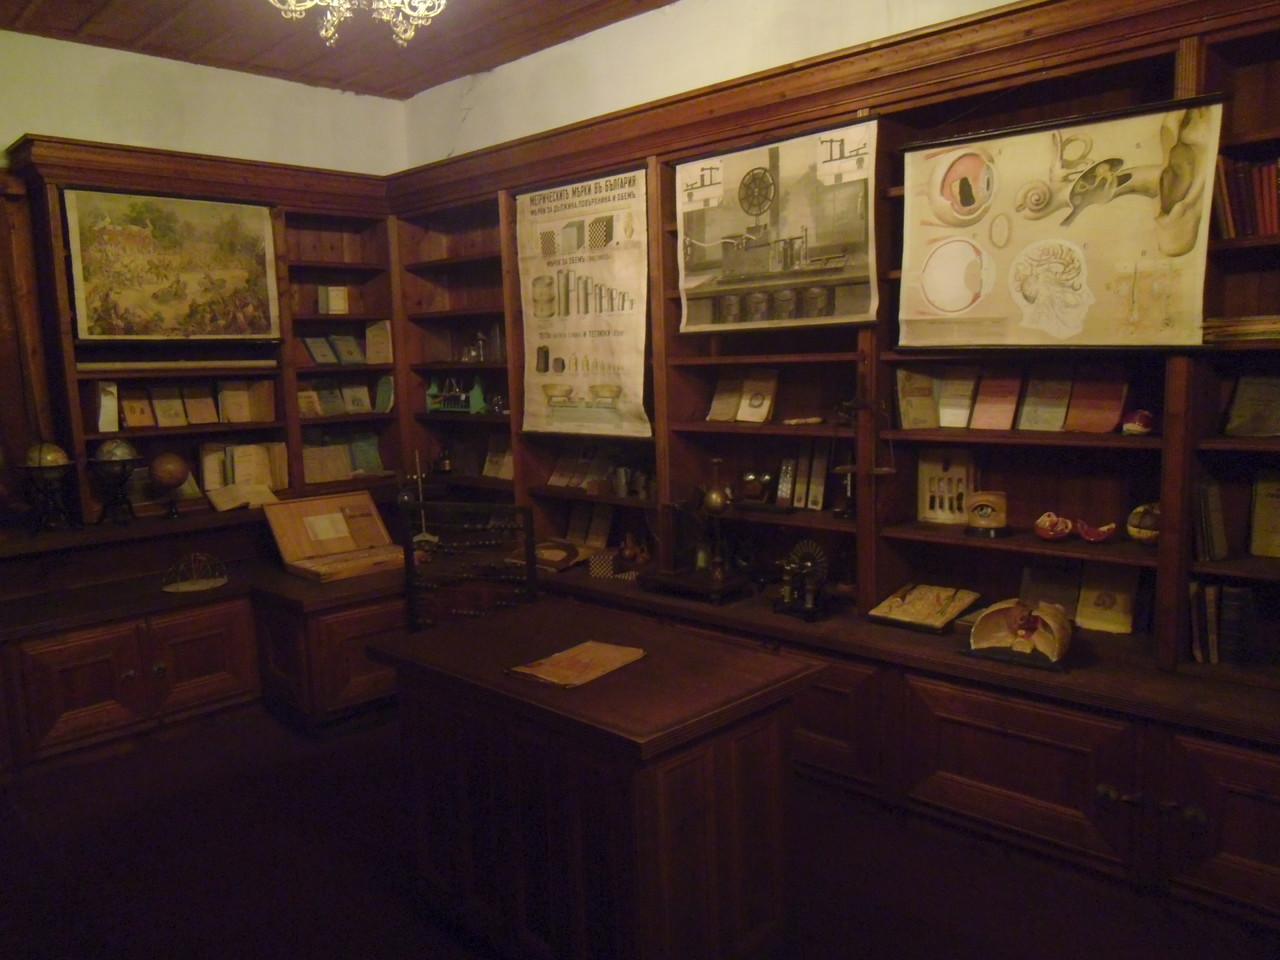 The book store from 19 century